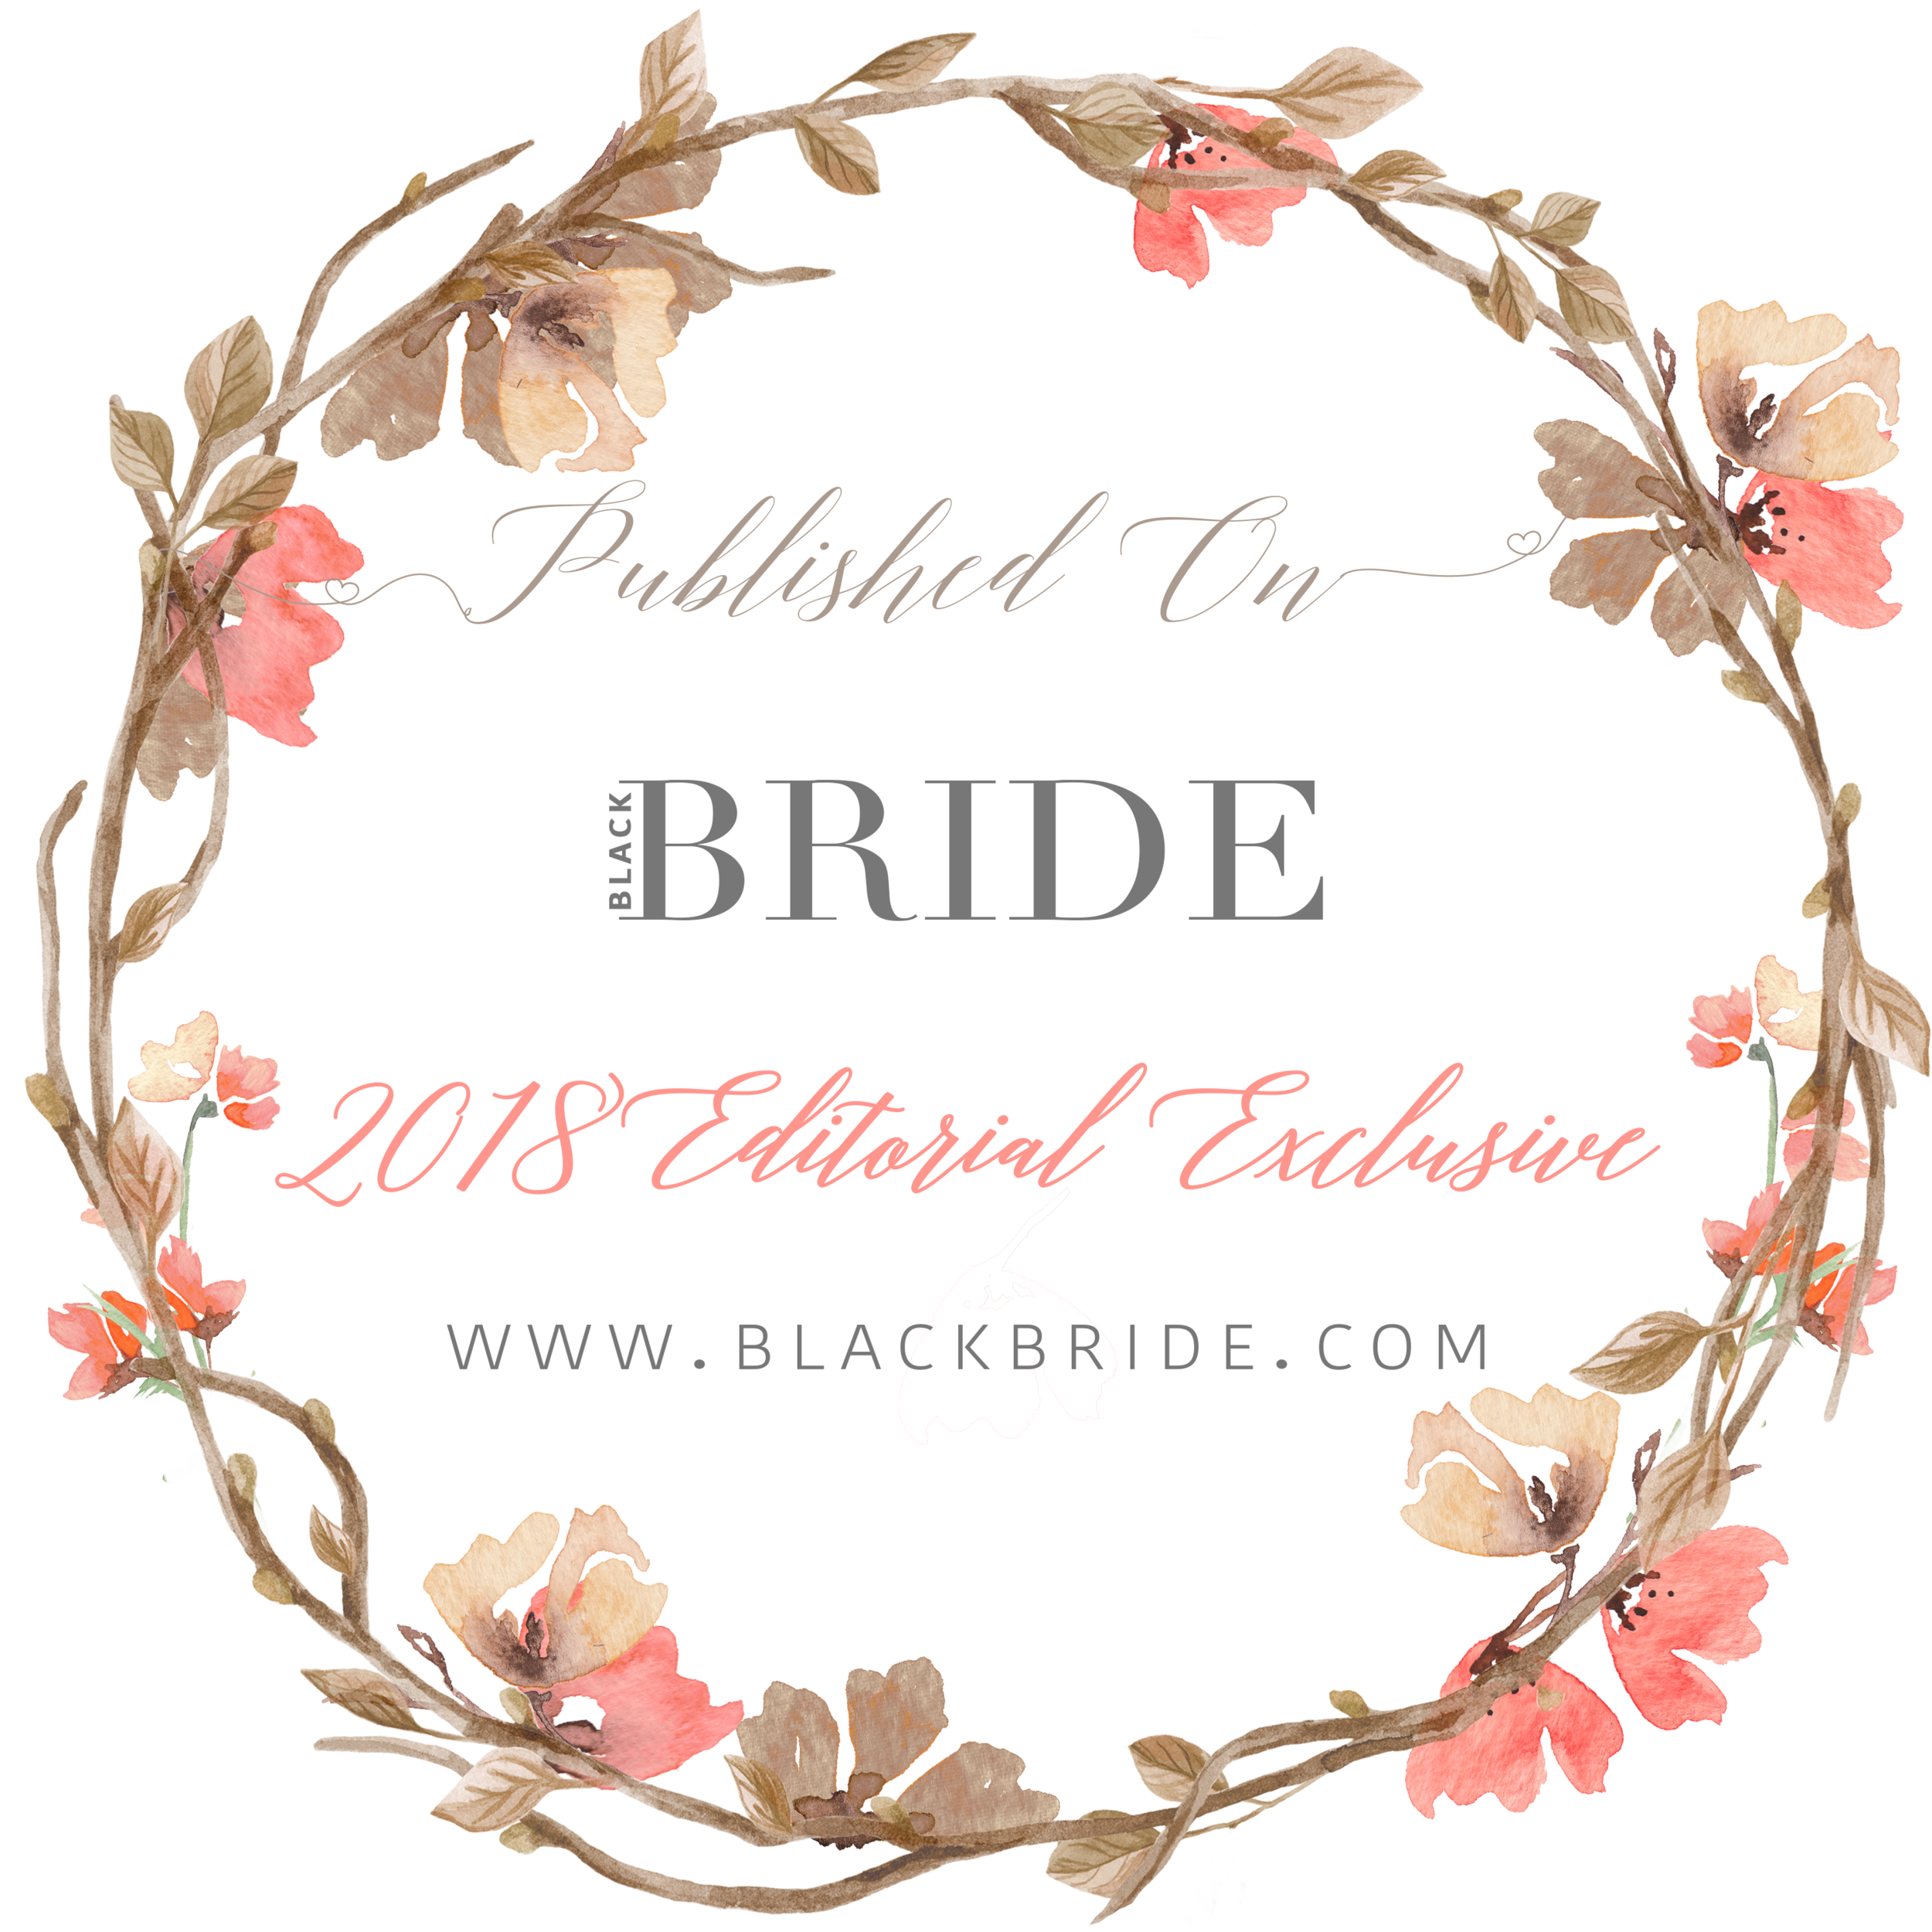 black bride badge Editorial Exclusive2 (1).png